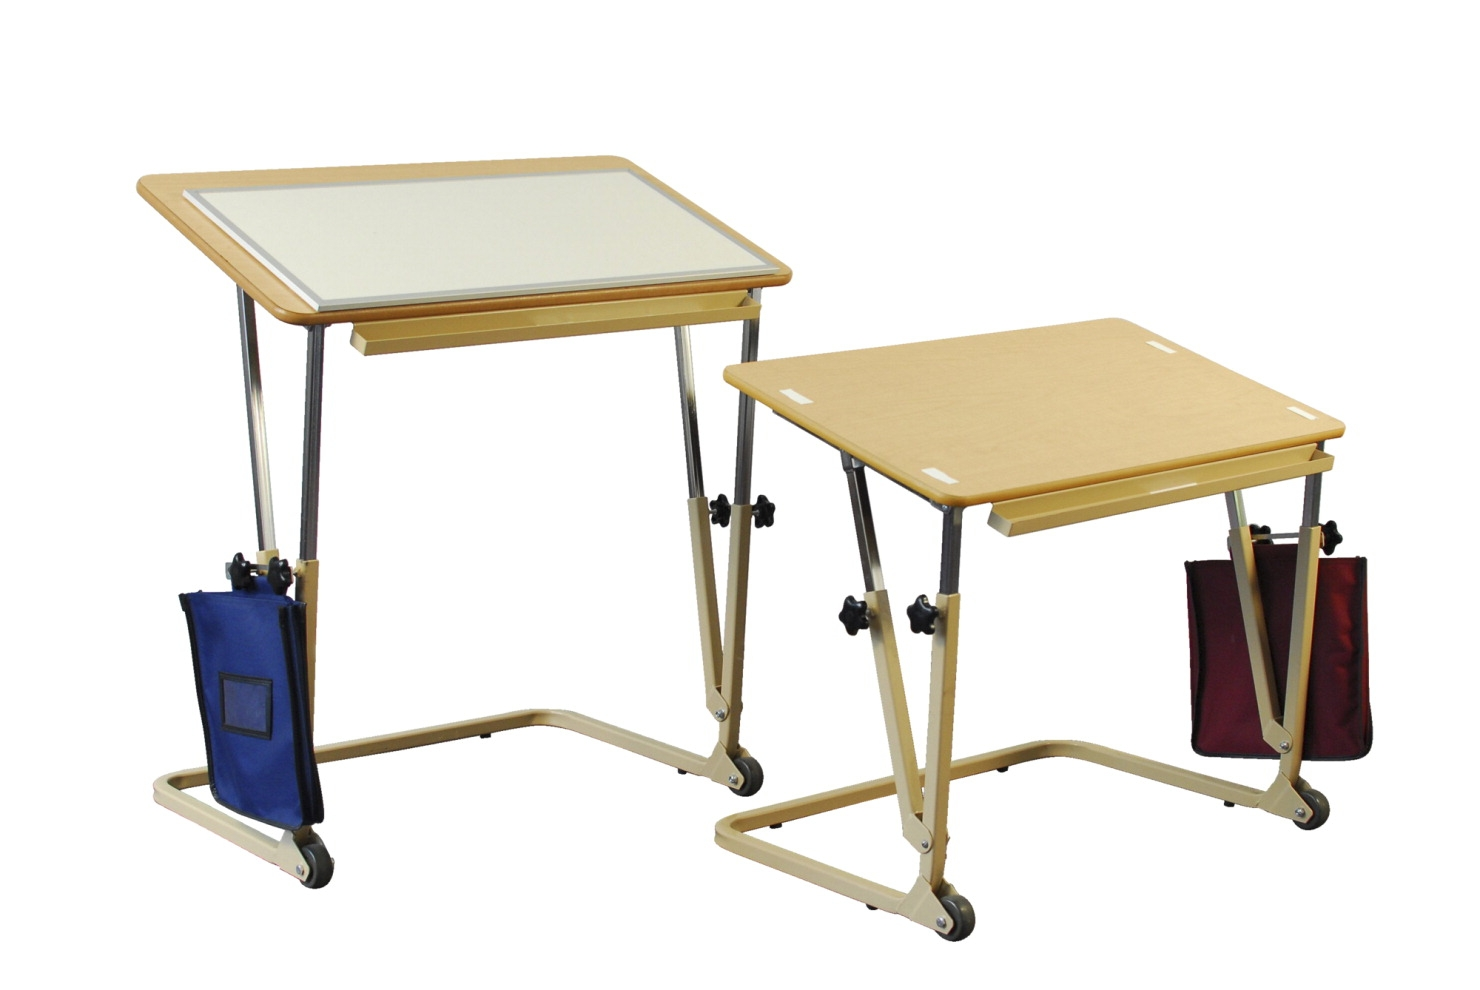 Alertdesk Pediatric Wheelchair Desk; Adjustable Height From 24-1/2 To 30-1/2 Inches; Angled Top Adjusts Up To 45 Degrees - 1577483 - Endurance Sports Wheelchair Racing 1577483